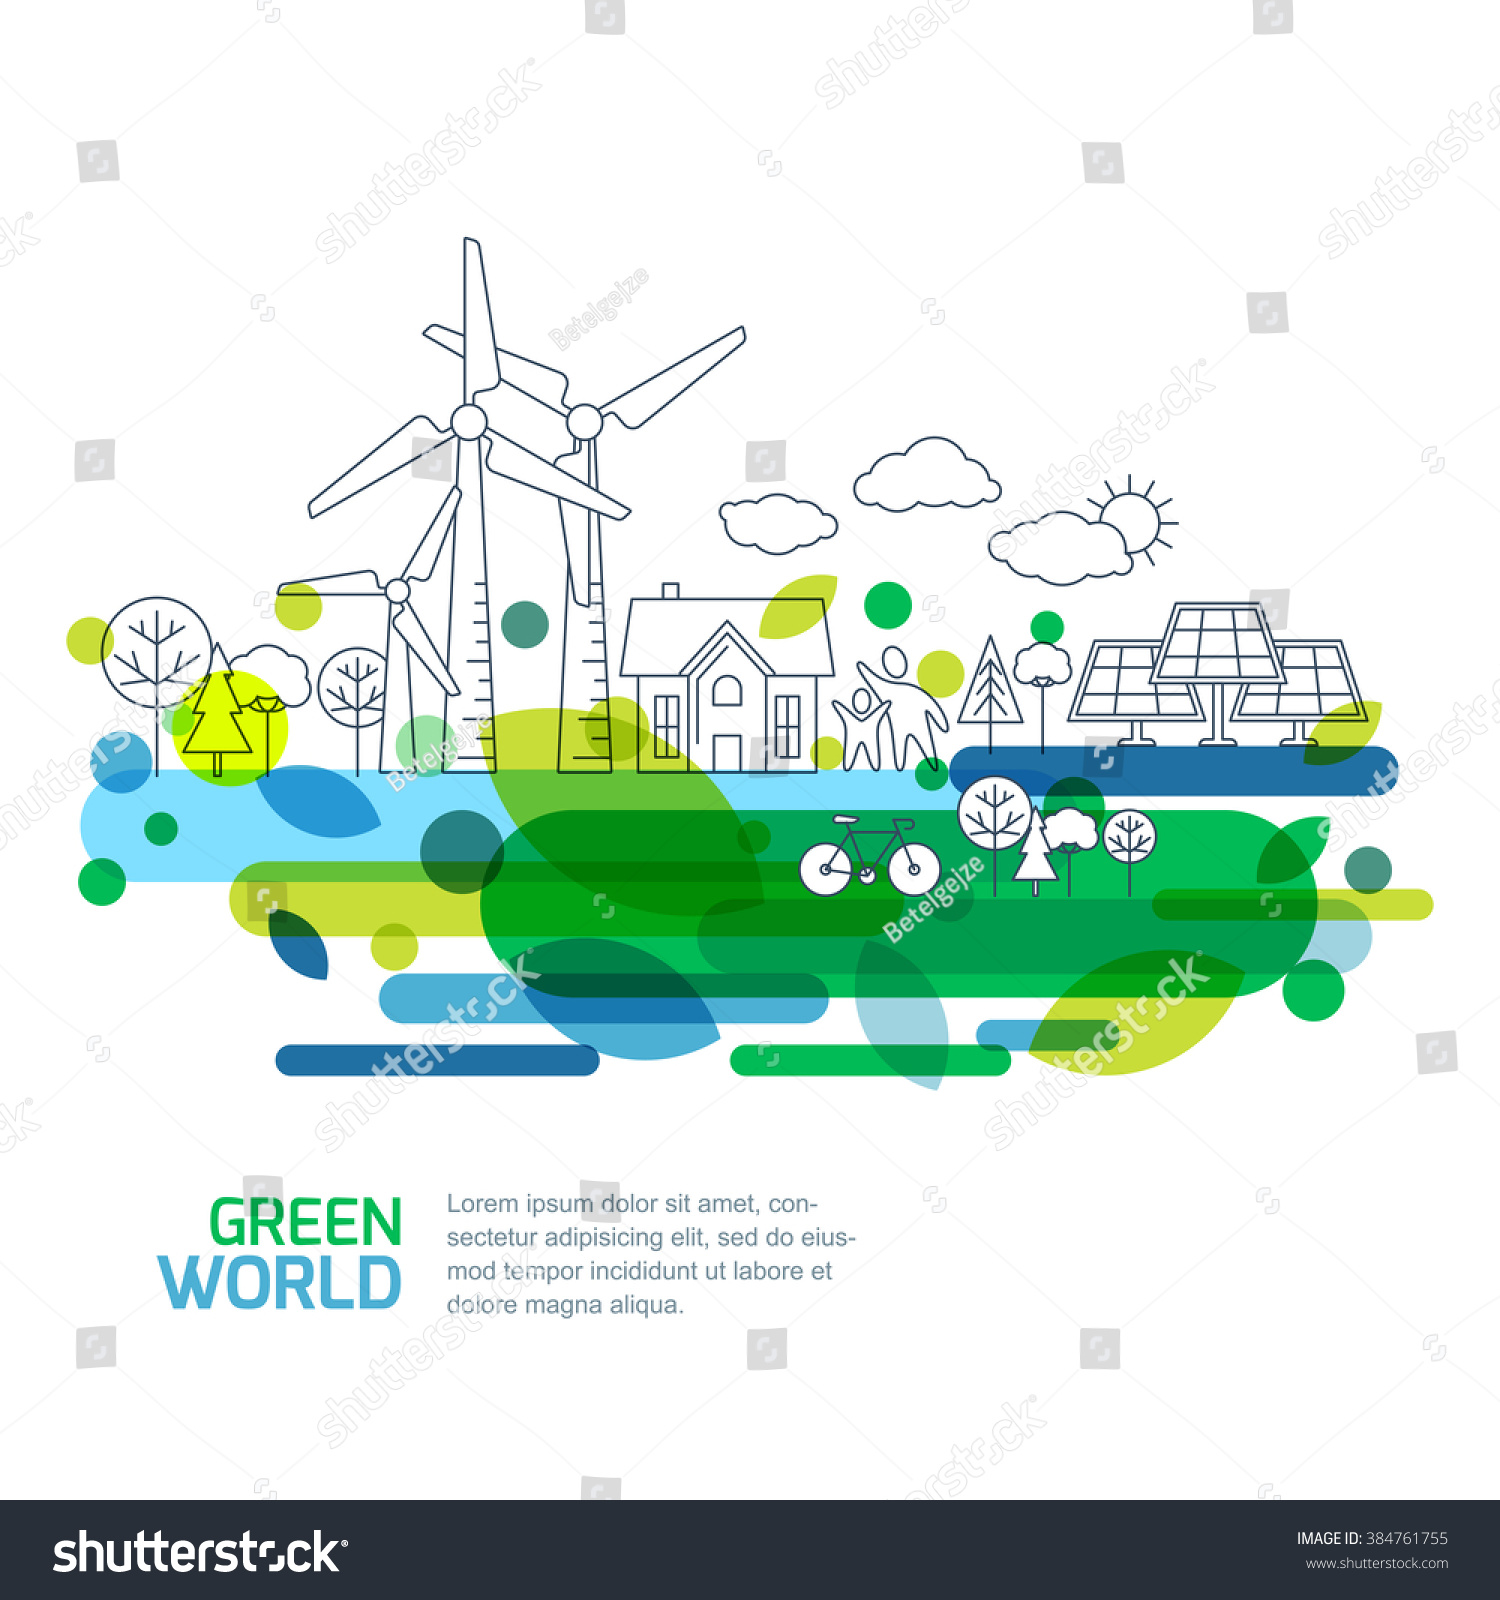 Environmental Concept Earthfriendly Landscapes: Green Landscape Illustration Isolated On White Stock